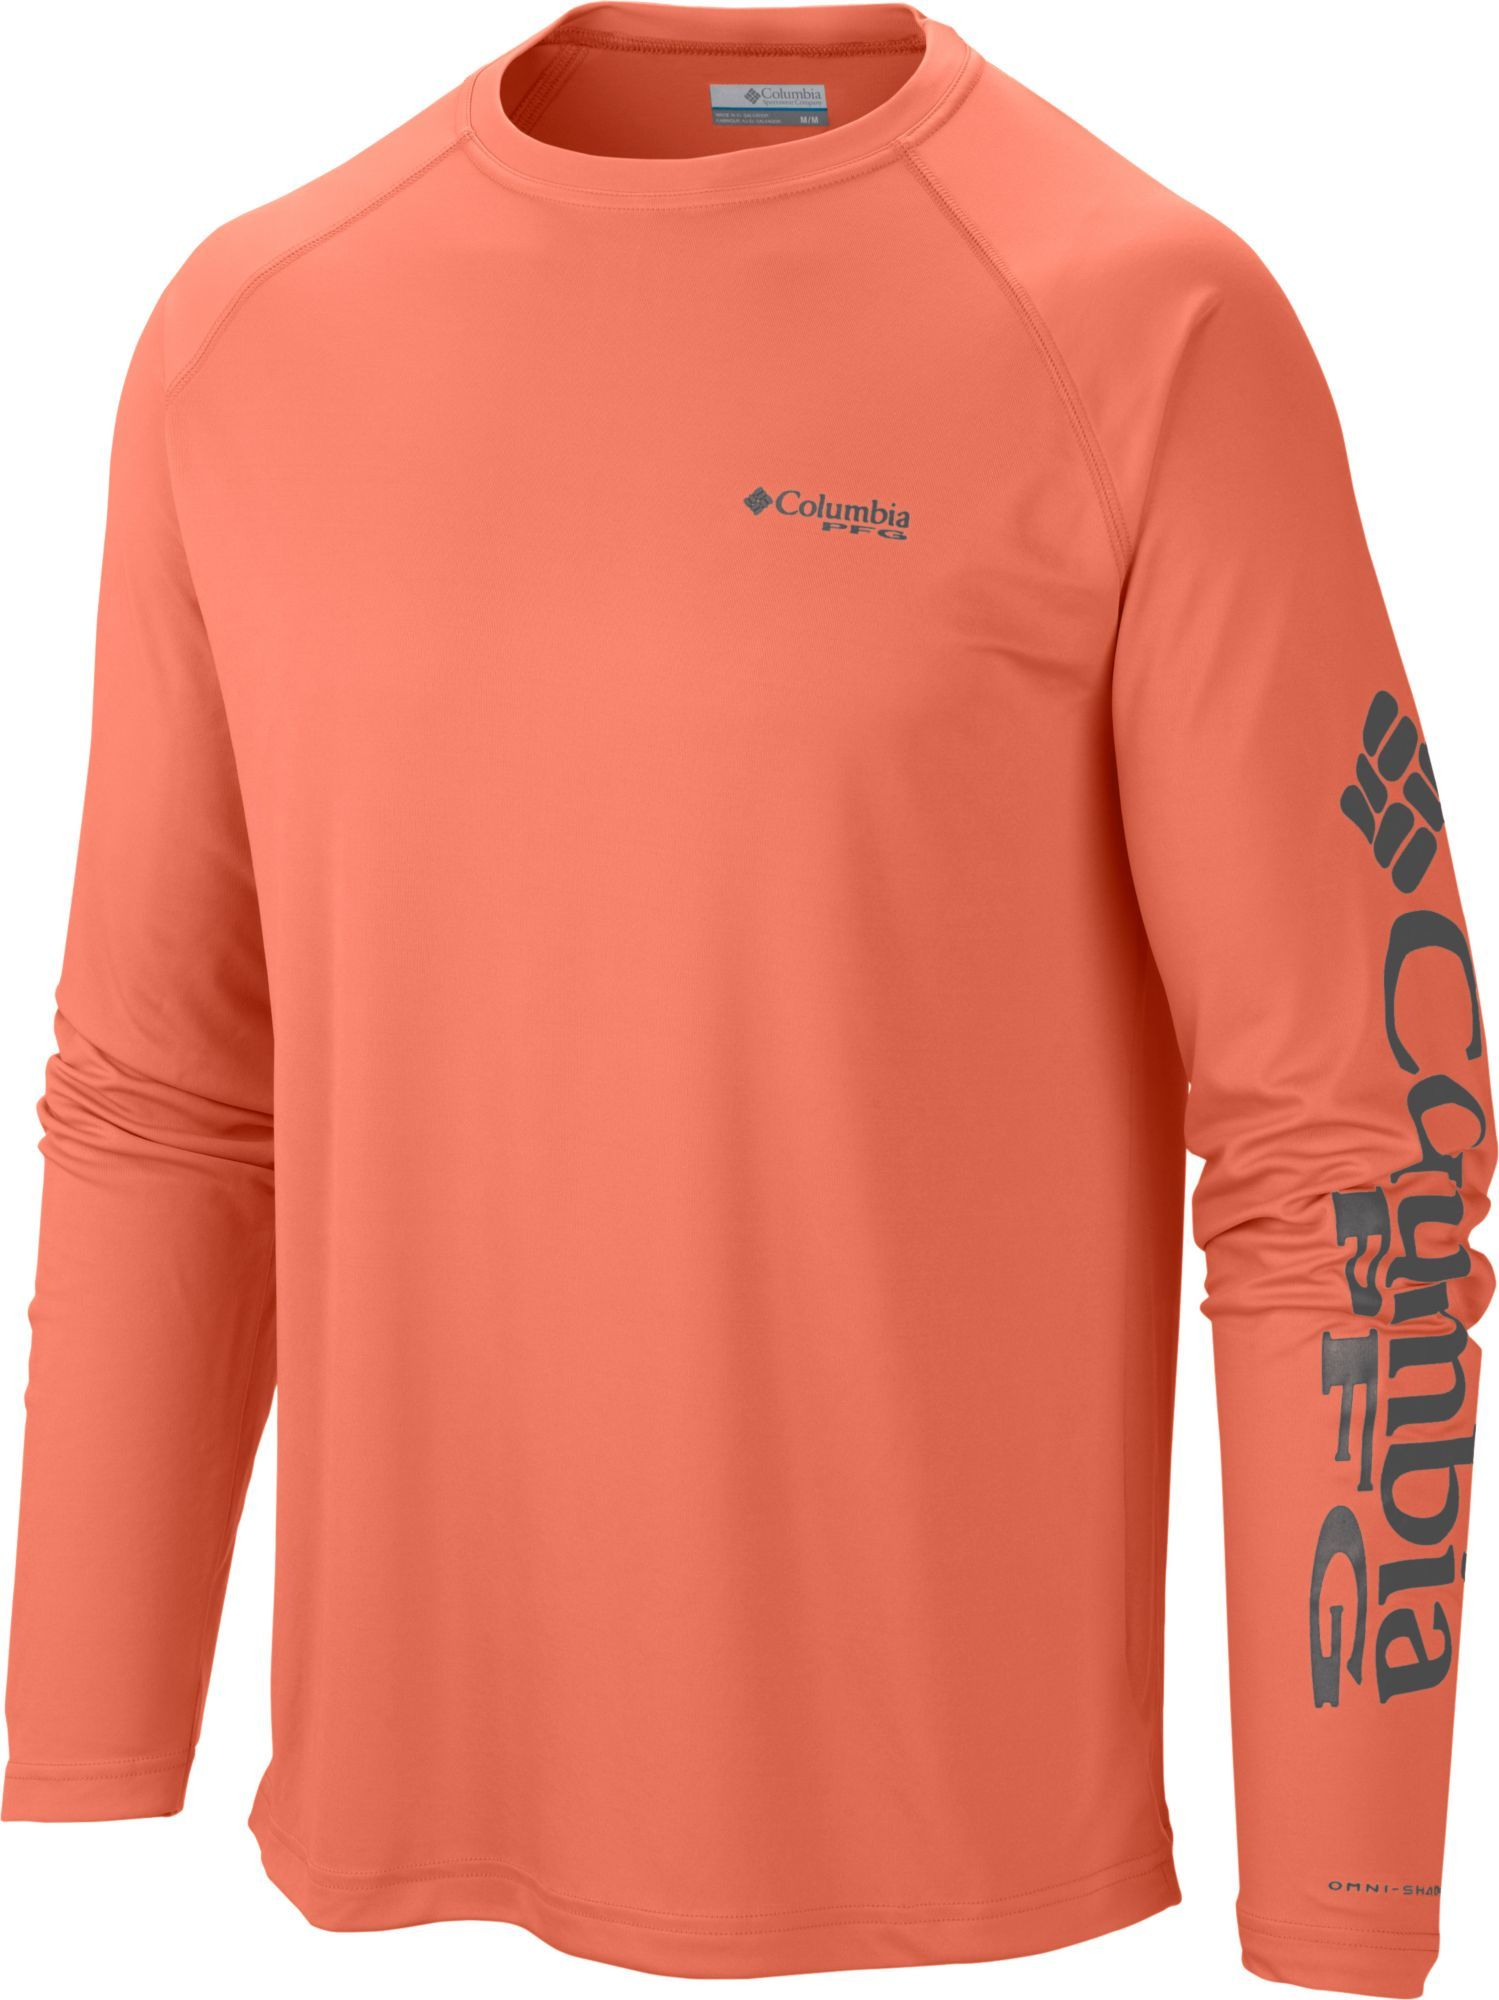 a892db9a Columbia Men's PFG Terminal Tackle Long Sleeve Shirt - Tall, Size: 3XT,  Bright Peach/Grill Logo